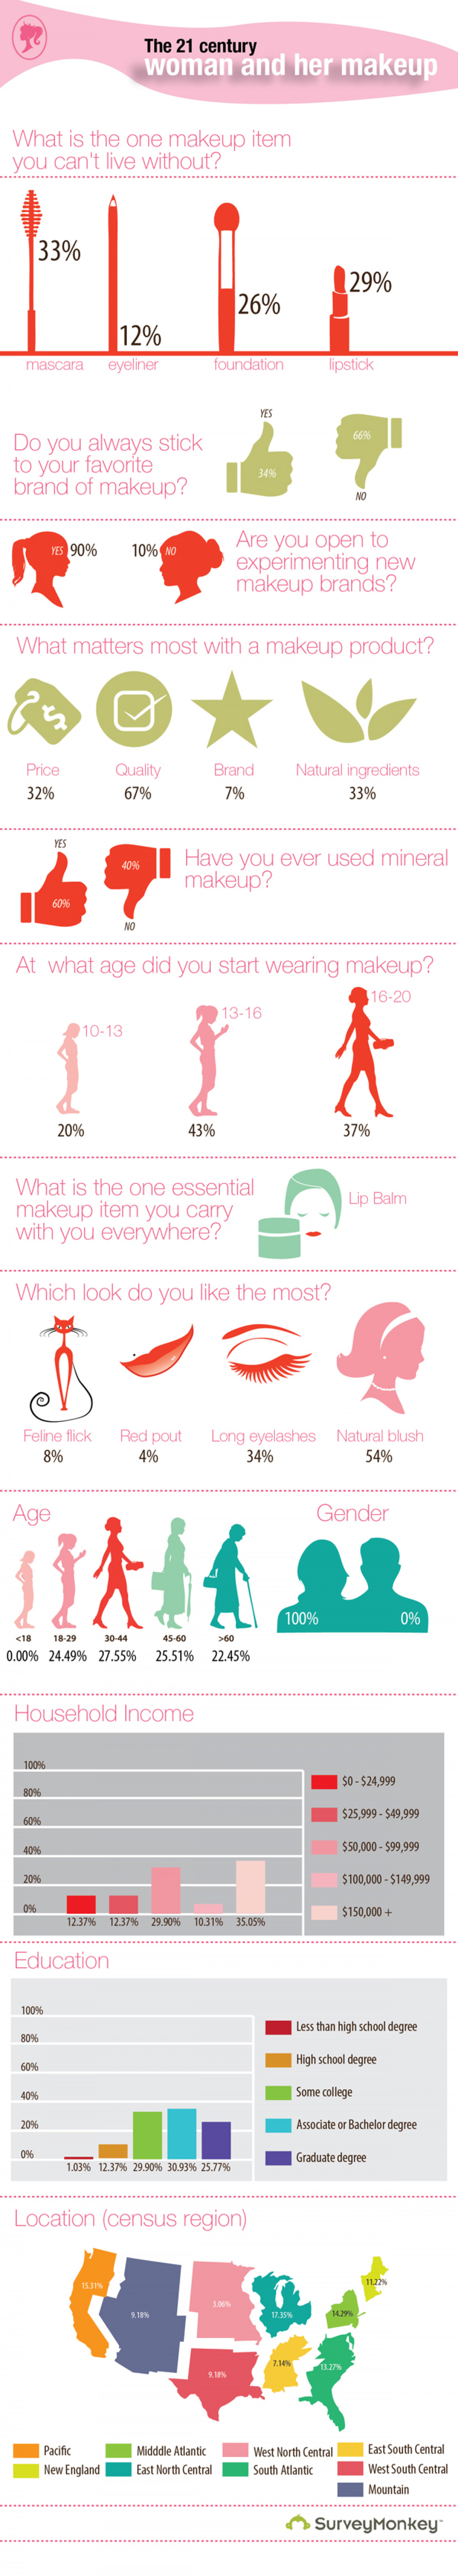 21 Century Woman and her Makeup Infographic